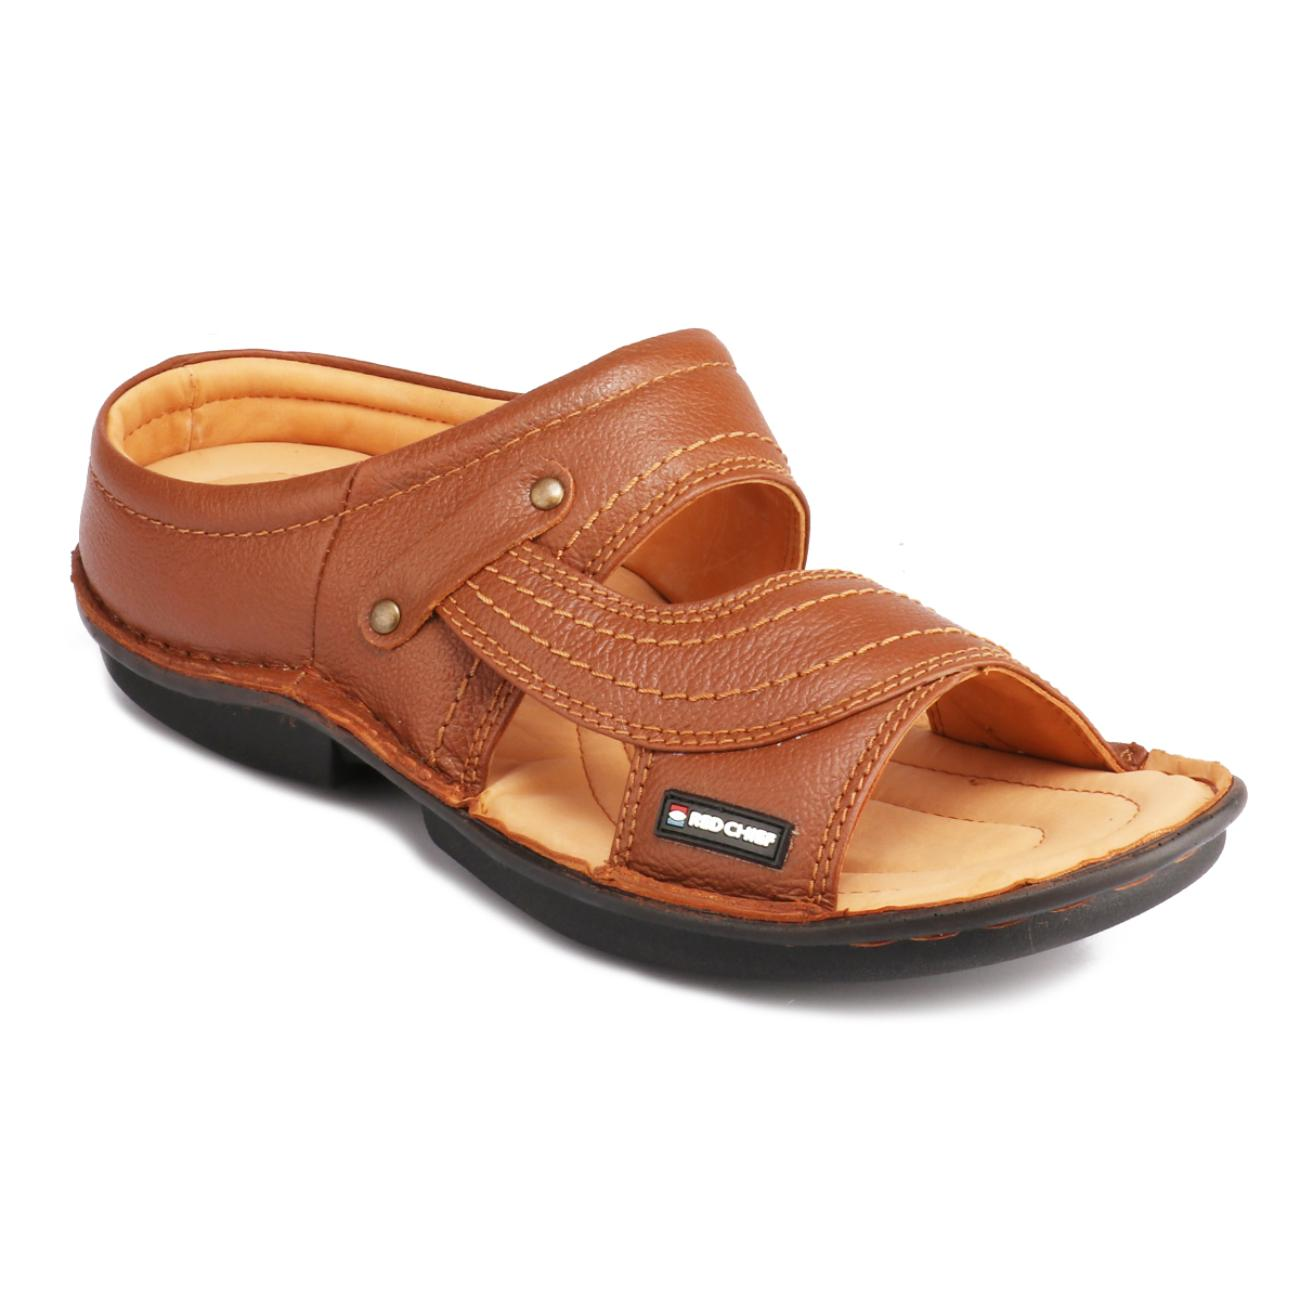 Slippers, Casual Leather Slippers